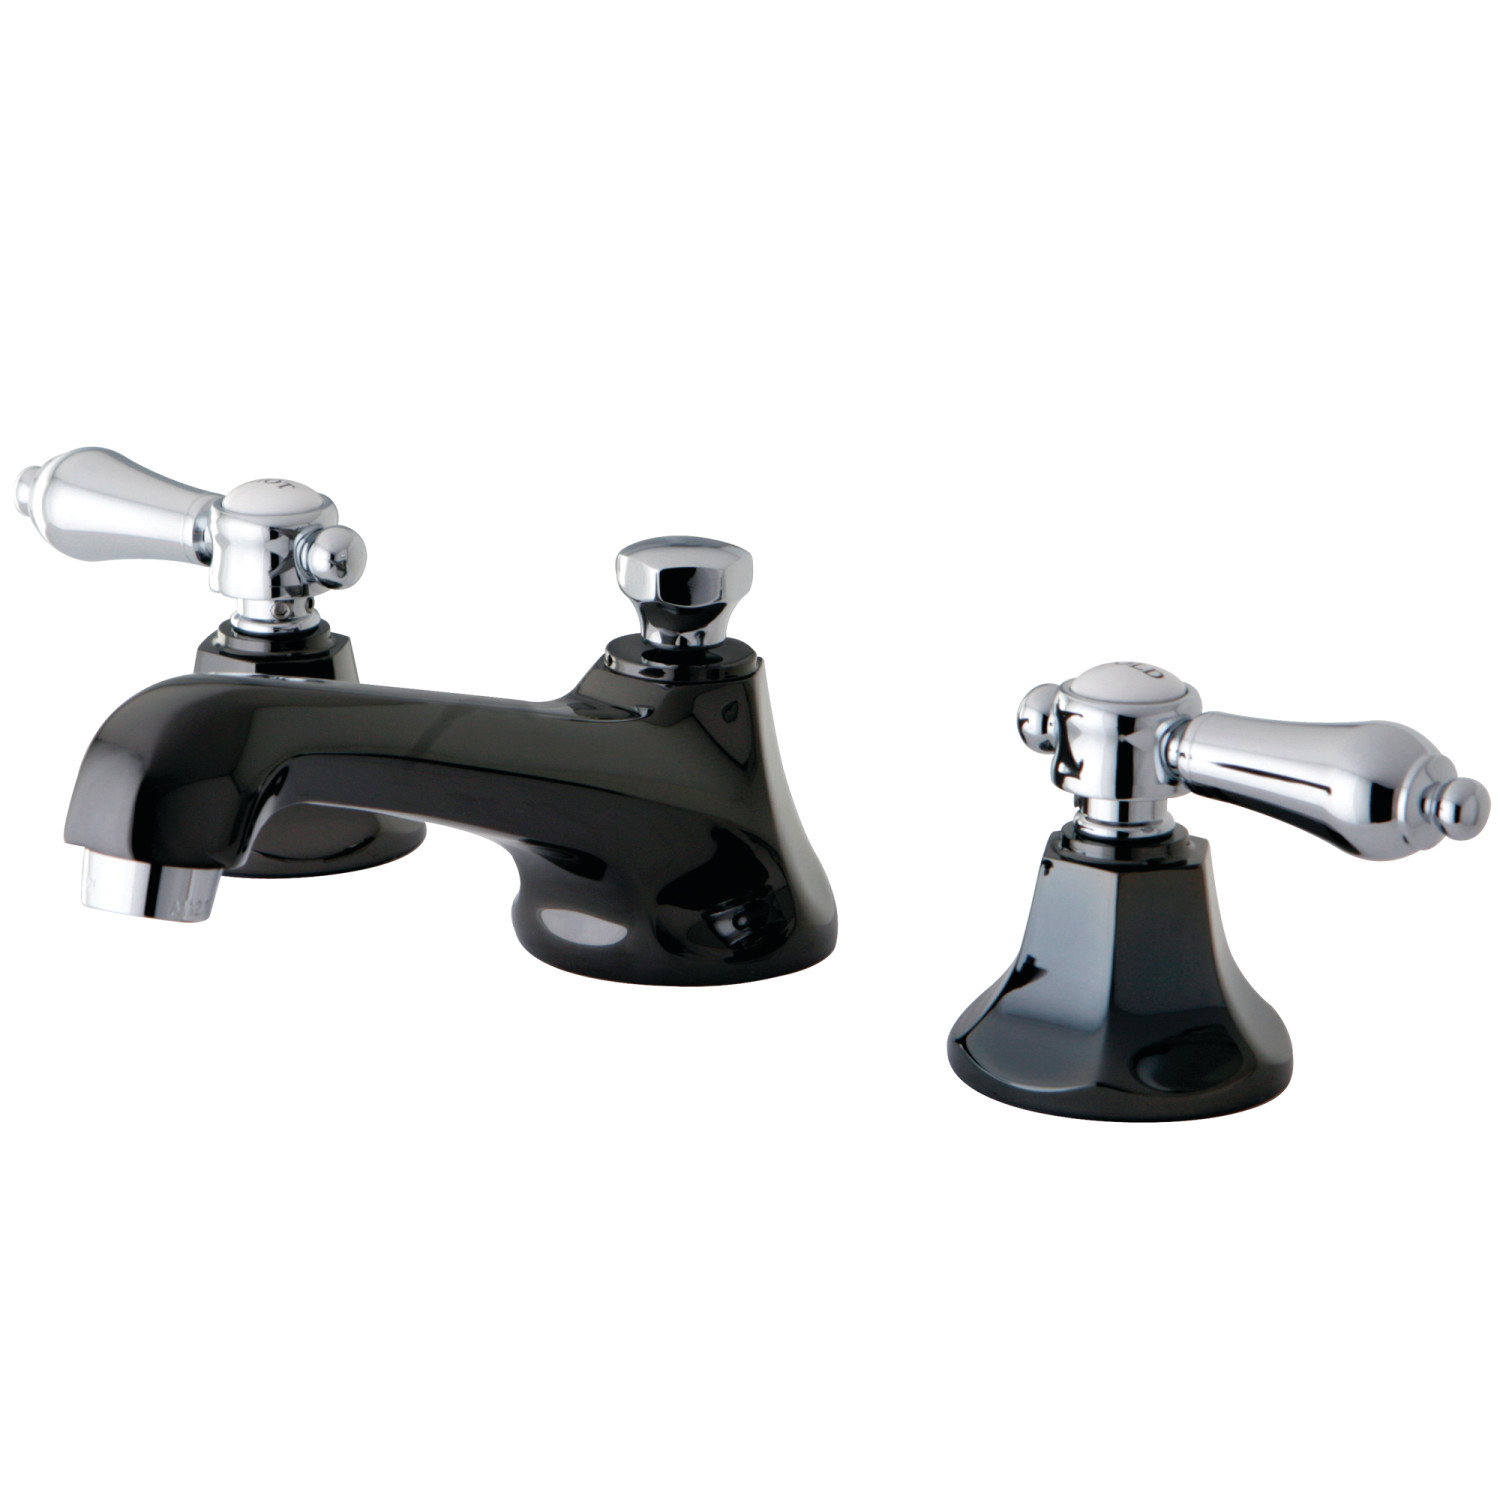 Traditional Two-Handle 3-Hole Deck Mounted Widespread Bathroom Faucet with Brass Pop-Up in Black Stainless Steel/Polished Chrome